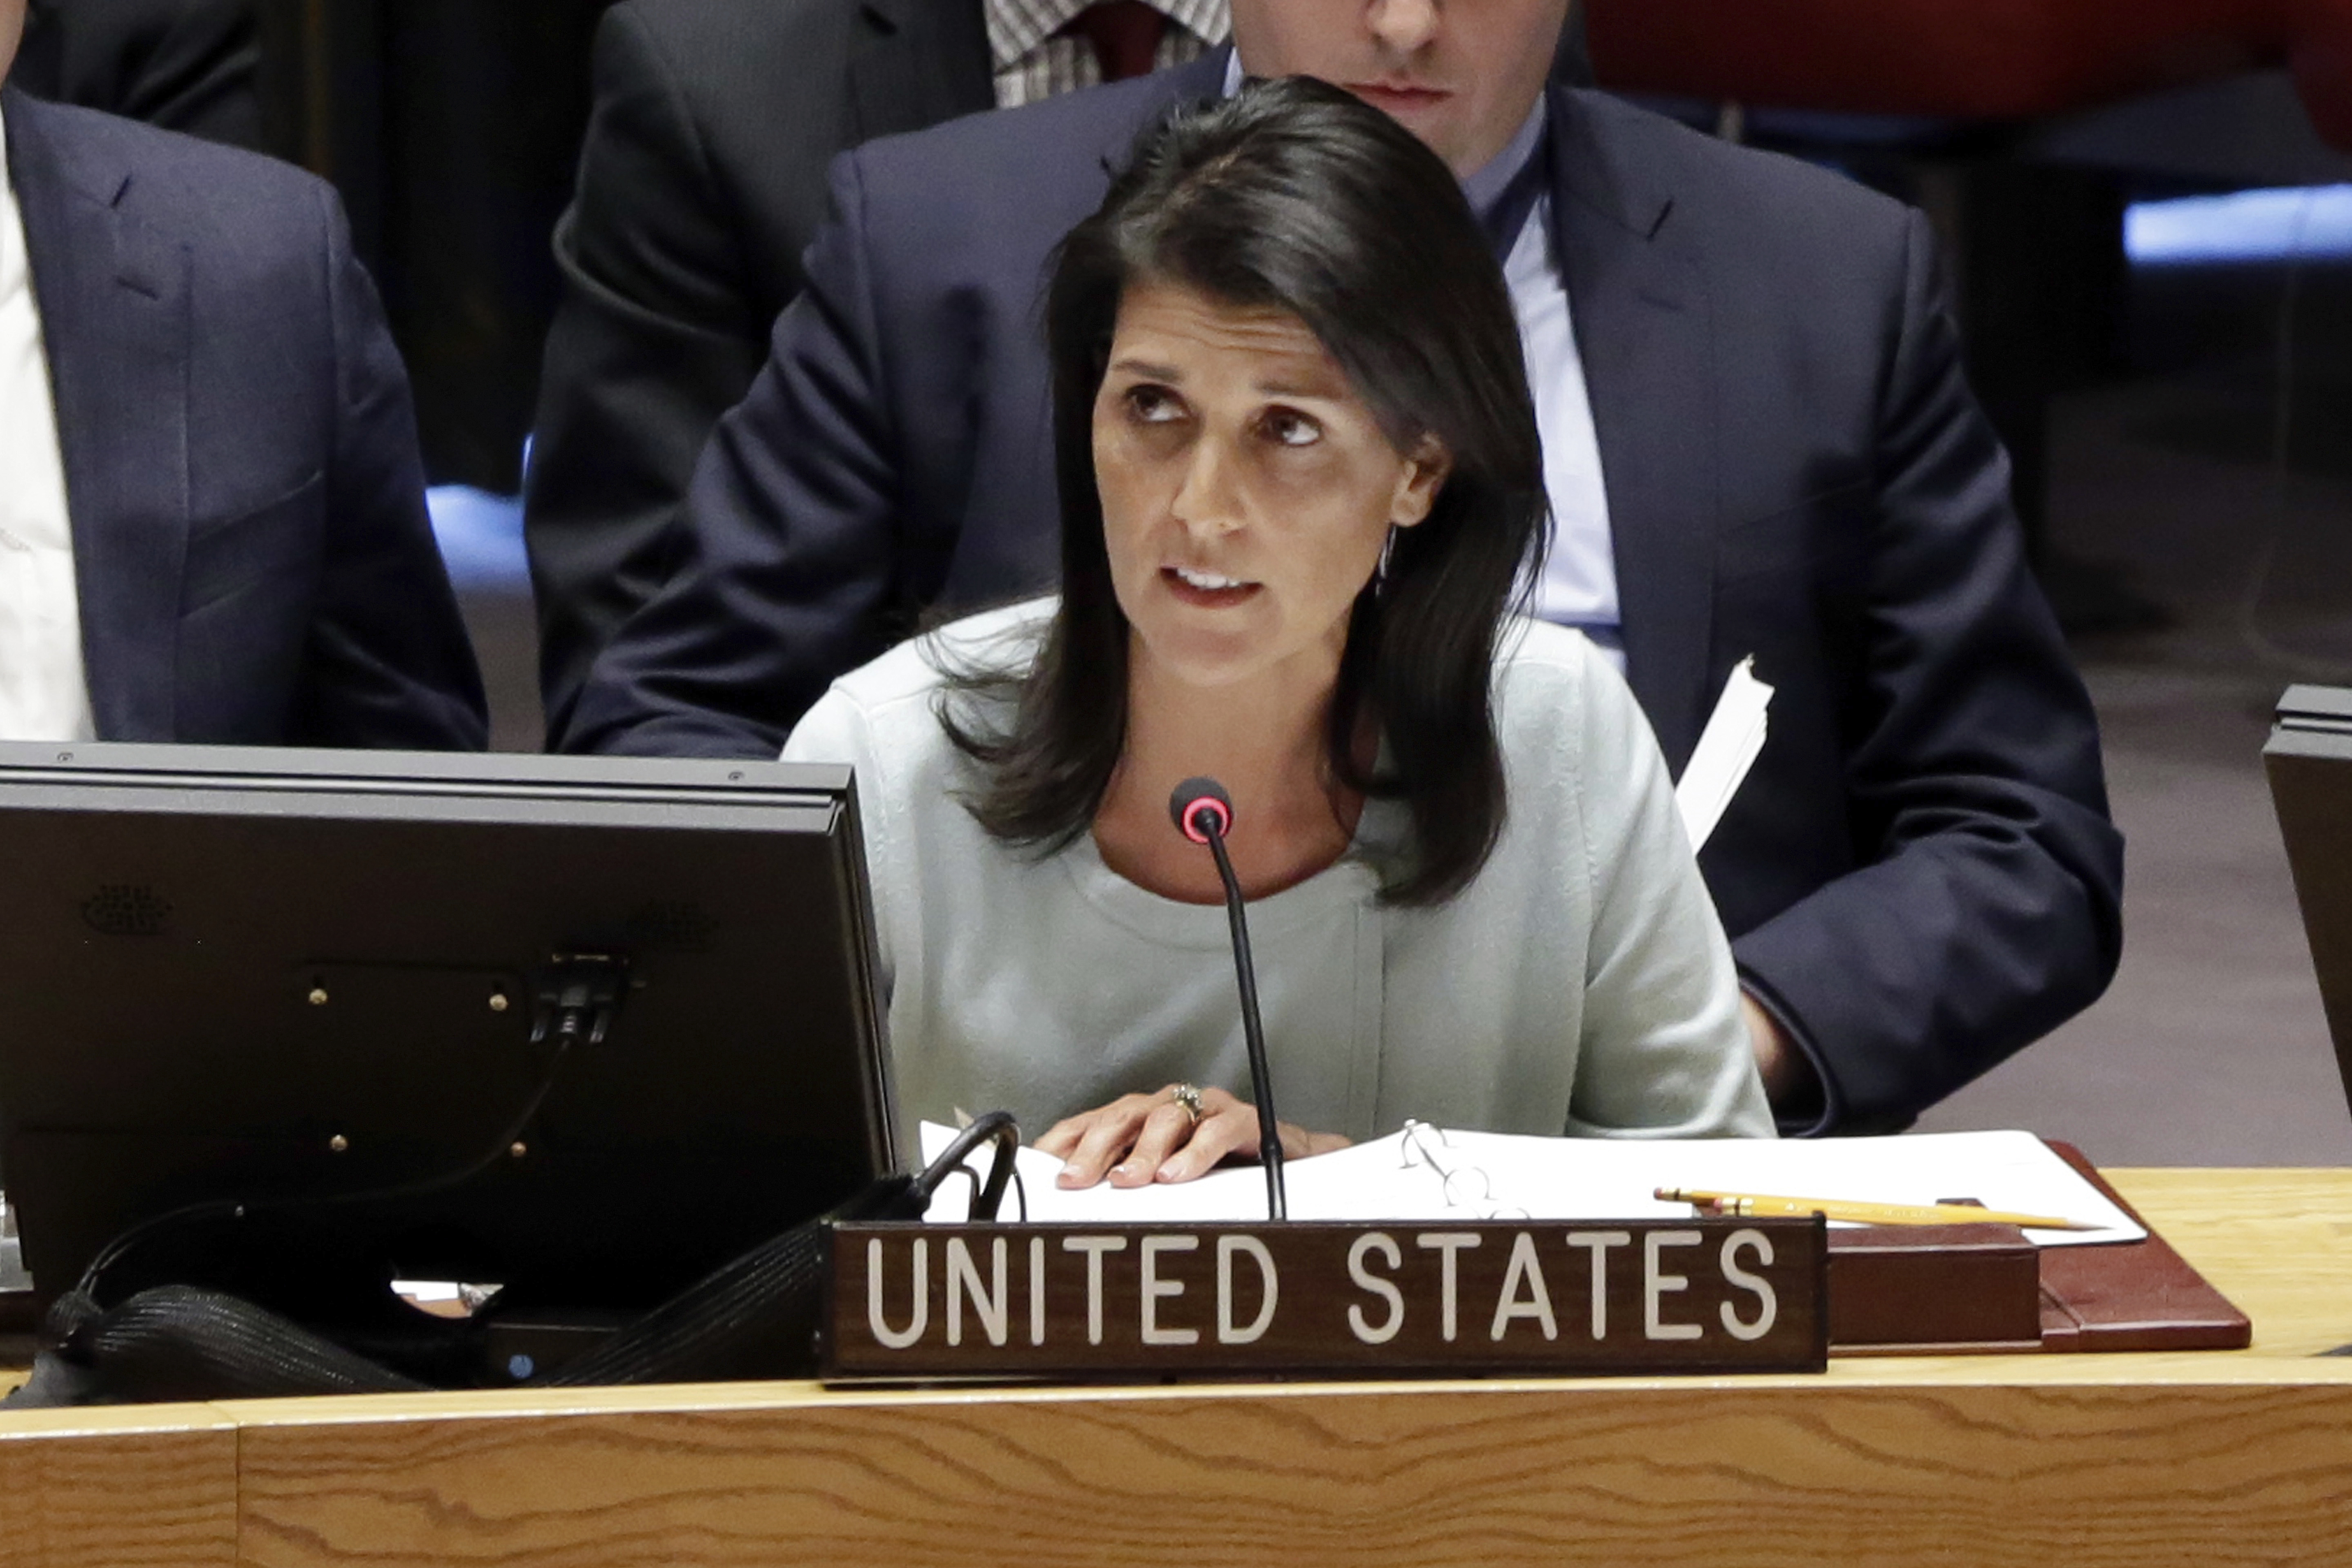 """The United States stands with the people of Ukraine who have suffered for nearly three years under Russian occupation and military interventions,"" U.S. Ambassador to the U.N. Nikki Haley, said Thursday at a meeting of the U.N. Security Council. 